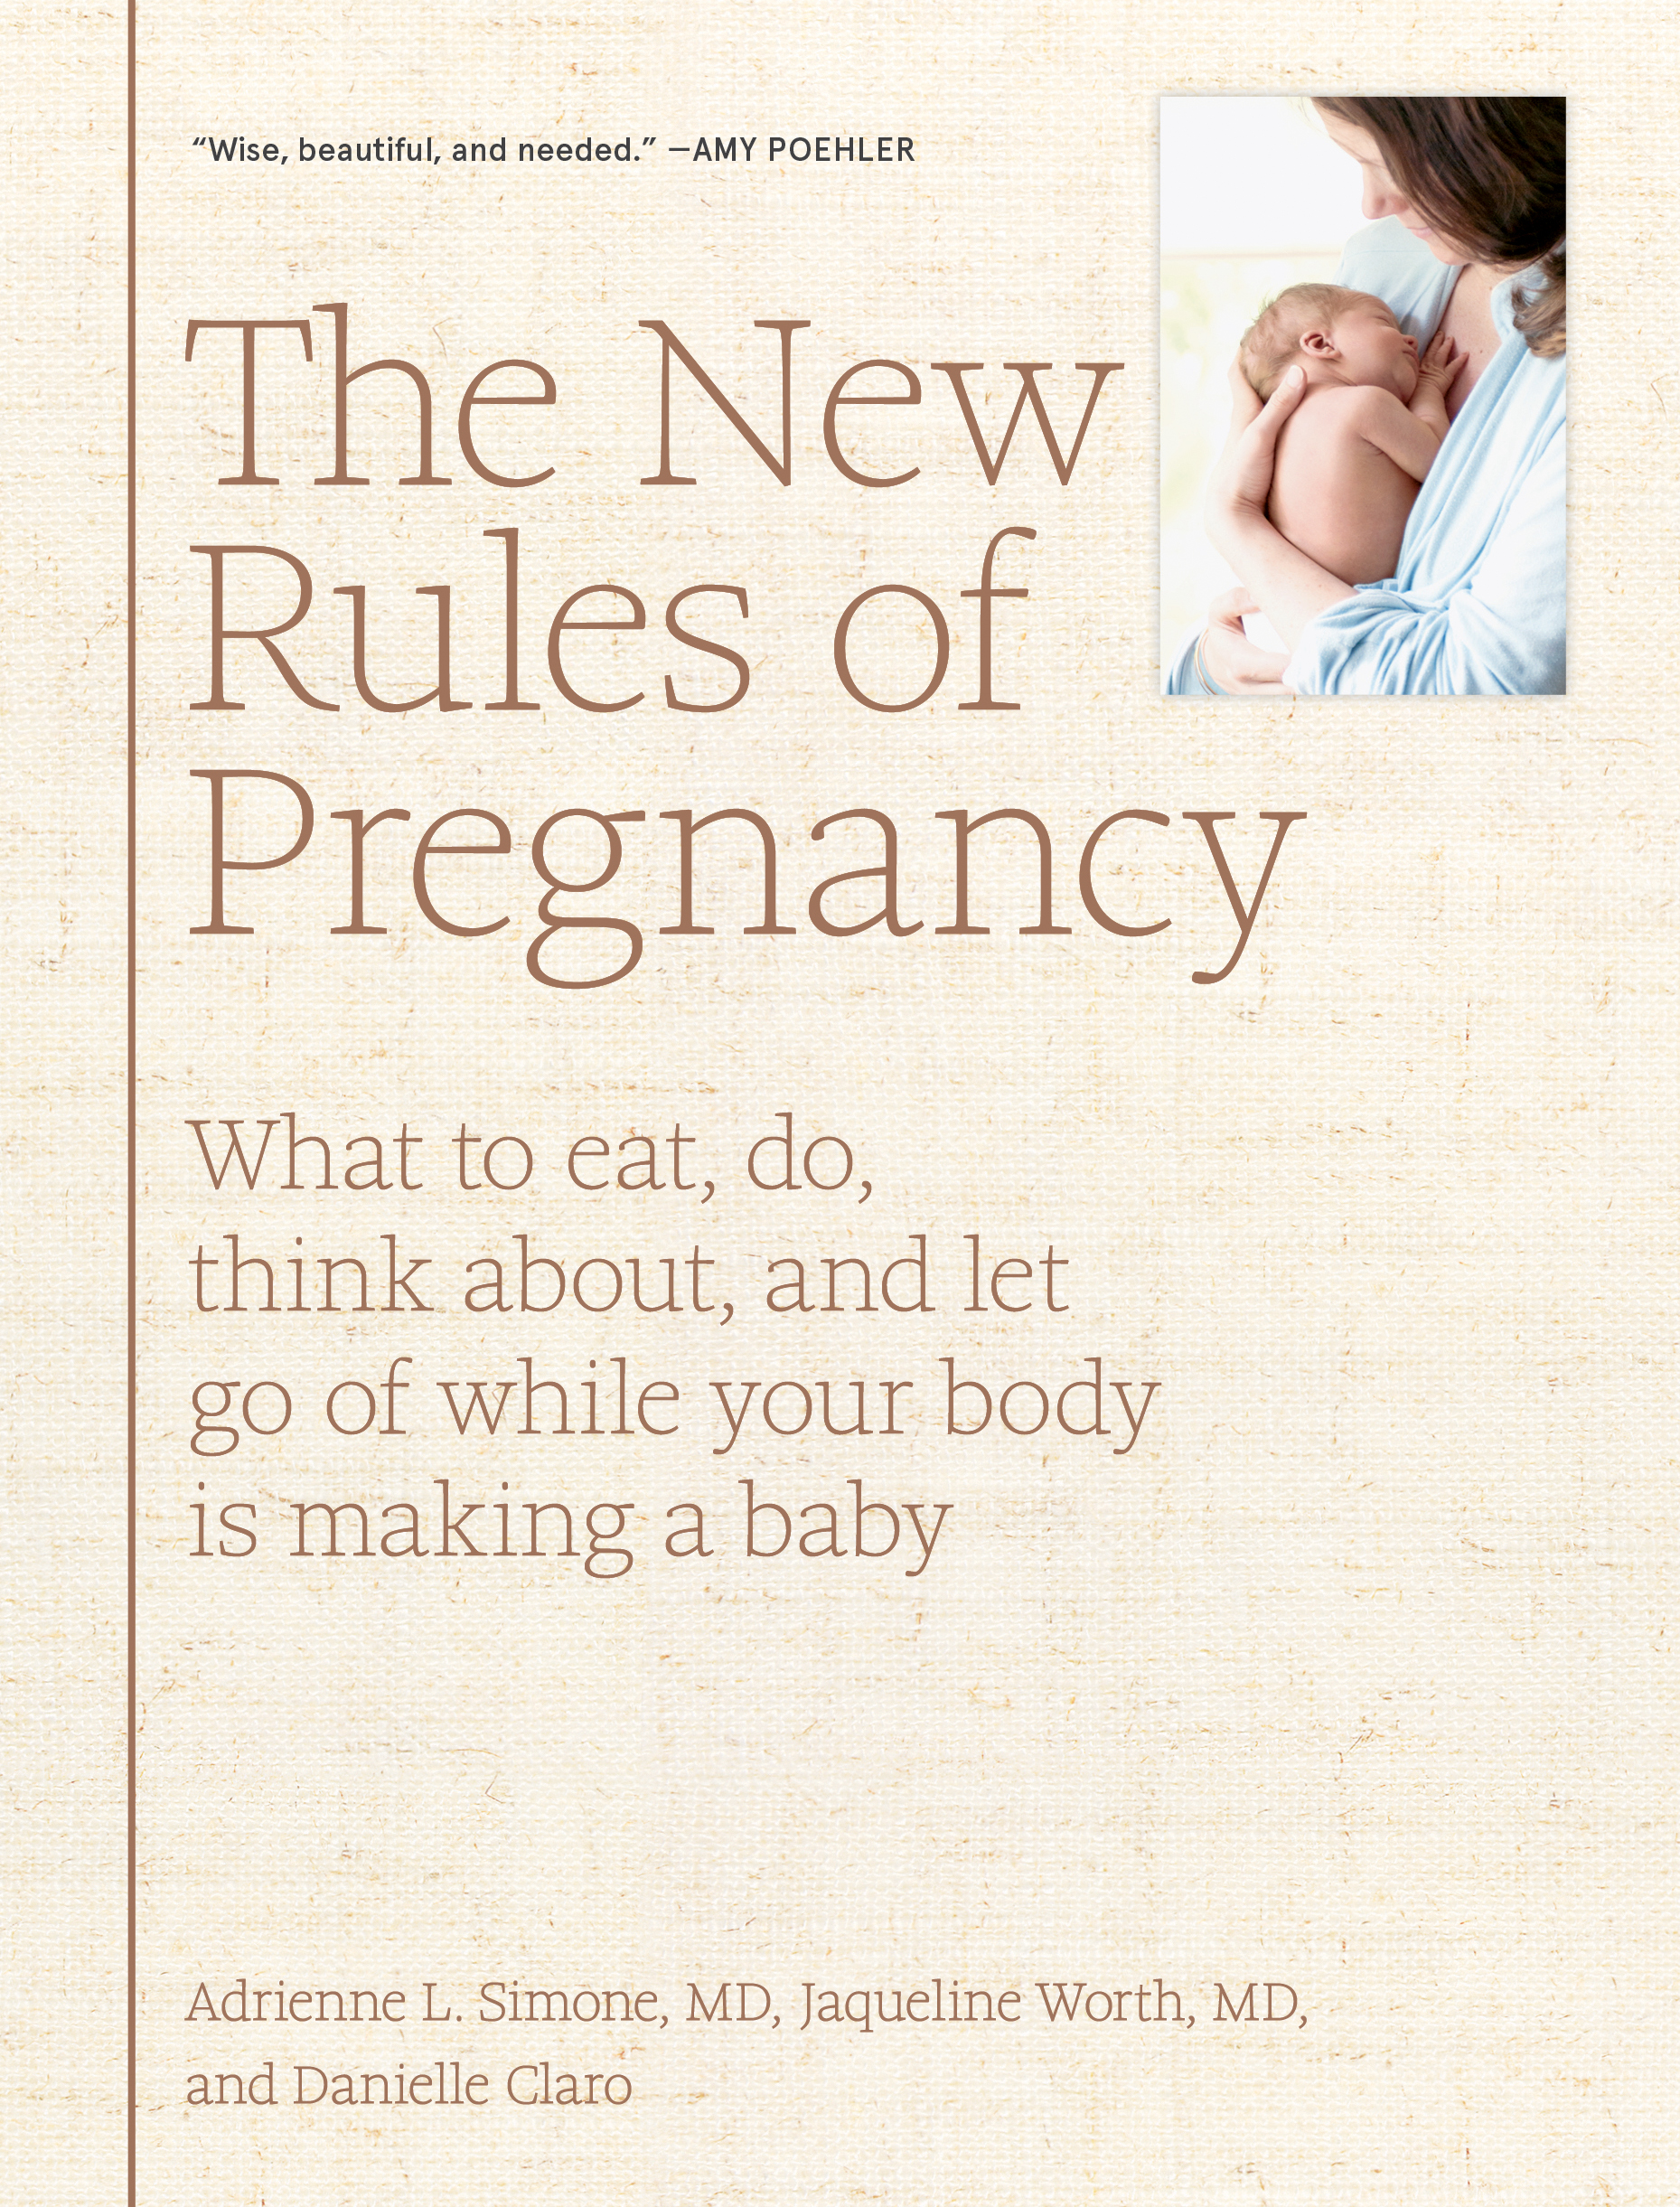 The New Rules of Pregnancy: What to Eat, Do, Think About, and Let Go Of While Your Body Is Making a Baby